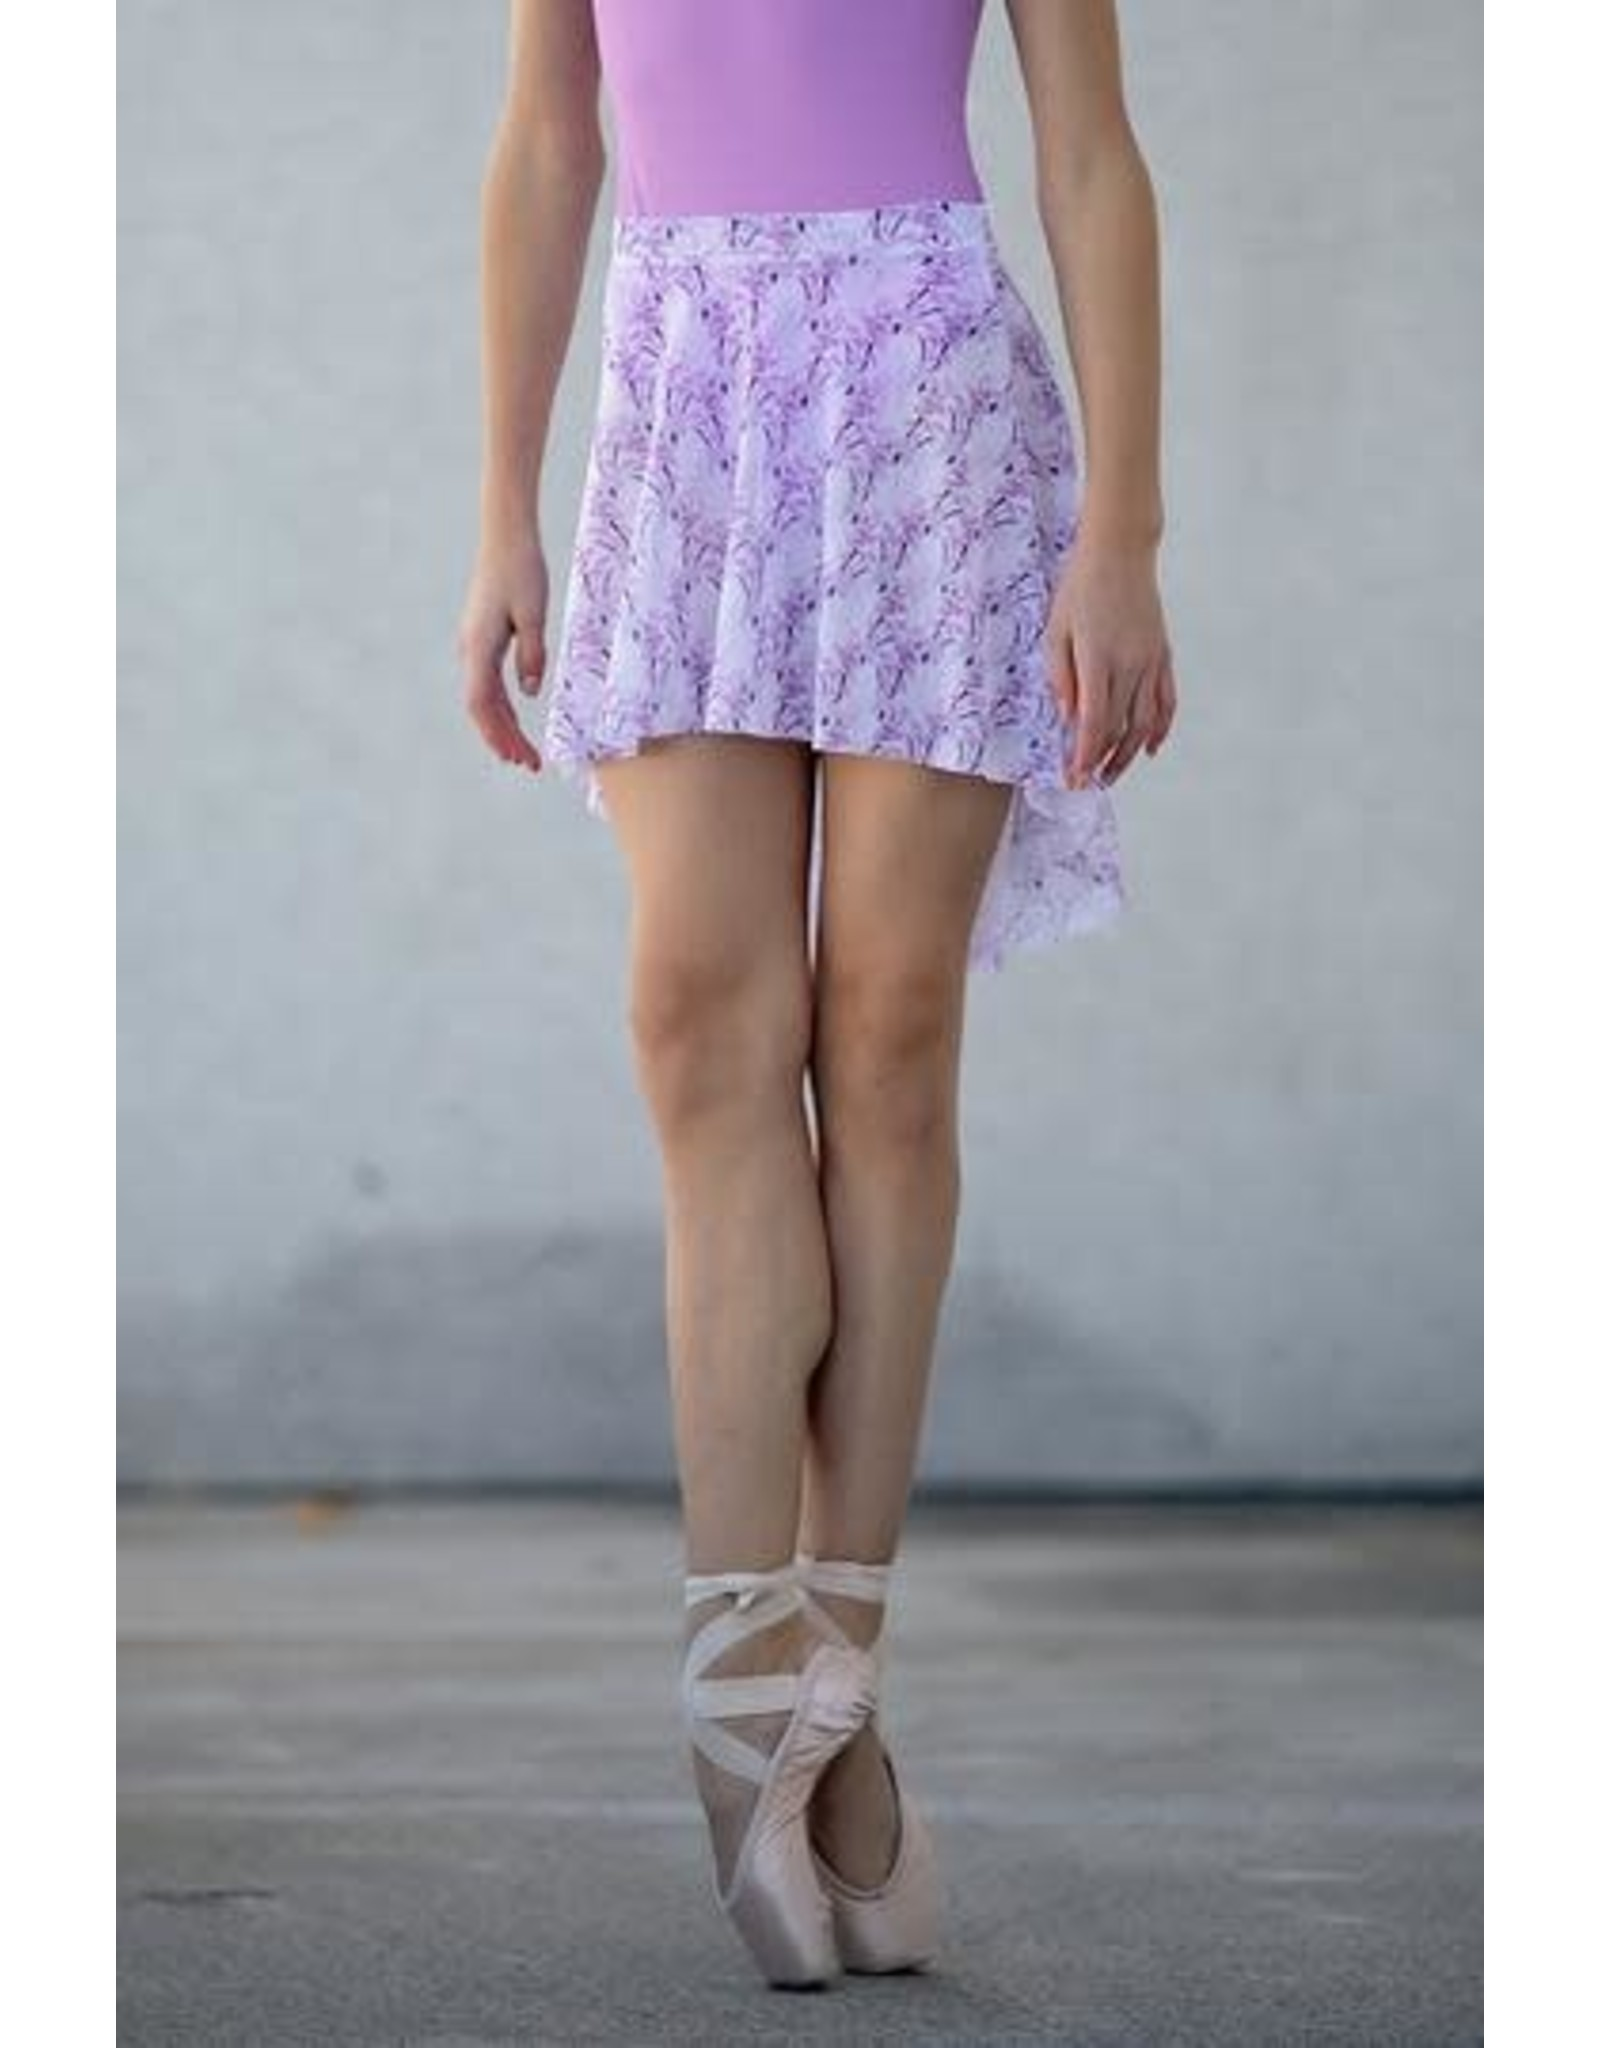 Chic Ballet Alyvia Skirt Bouquet of Dreams